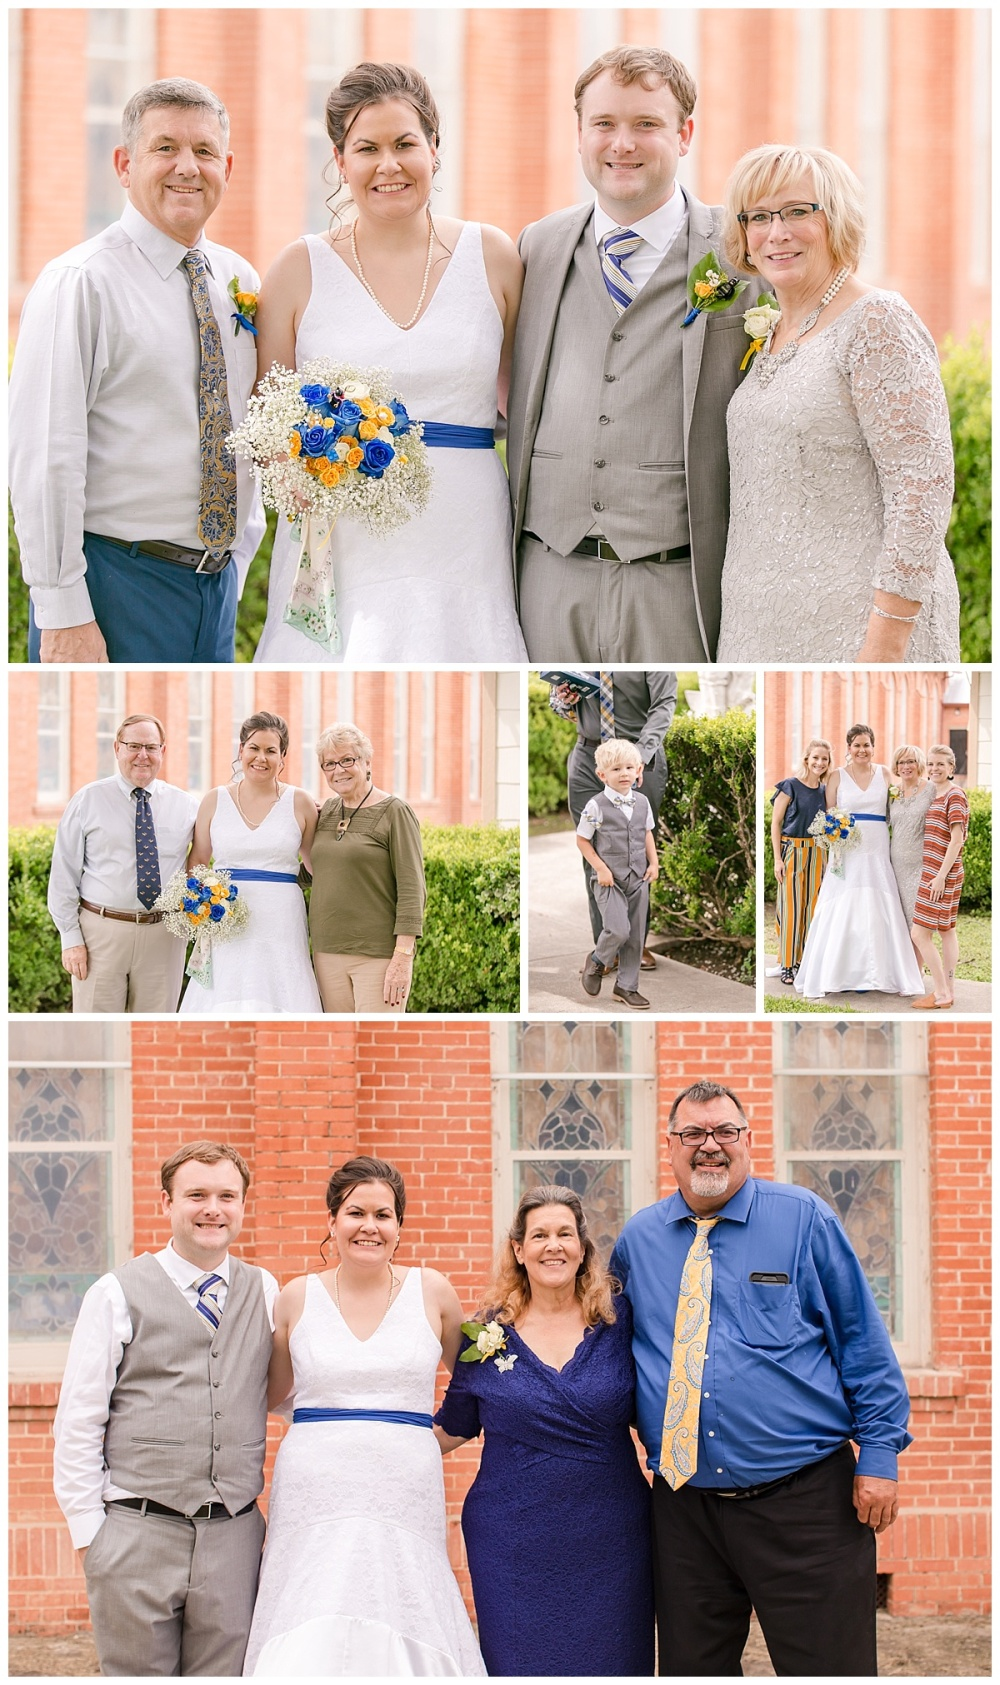 Texas-Wedding-Photographer-La-Coste-Our-Lady-Of-Grace-Church-Bride-Groom-Lego-Theme-Carly-Barton-Photography_0040.jpg